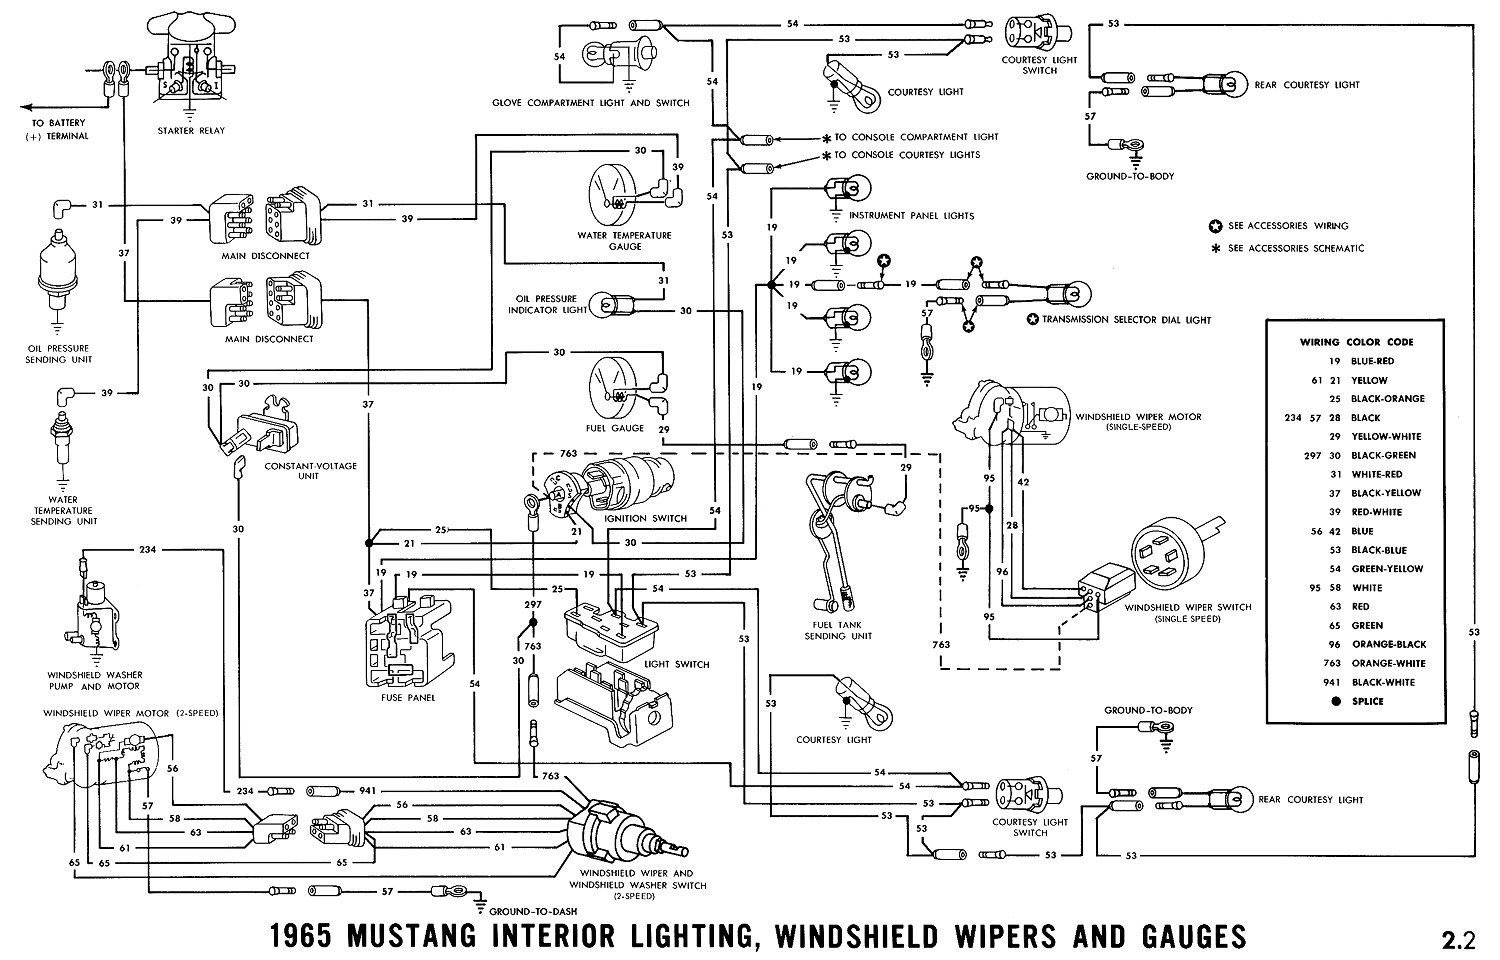 1965 Mustang Interior Lights, Windshield Wiper and Gauges Pictorial or  Schematic. Oil pressure ...